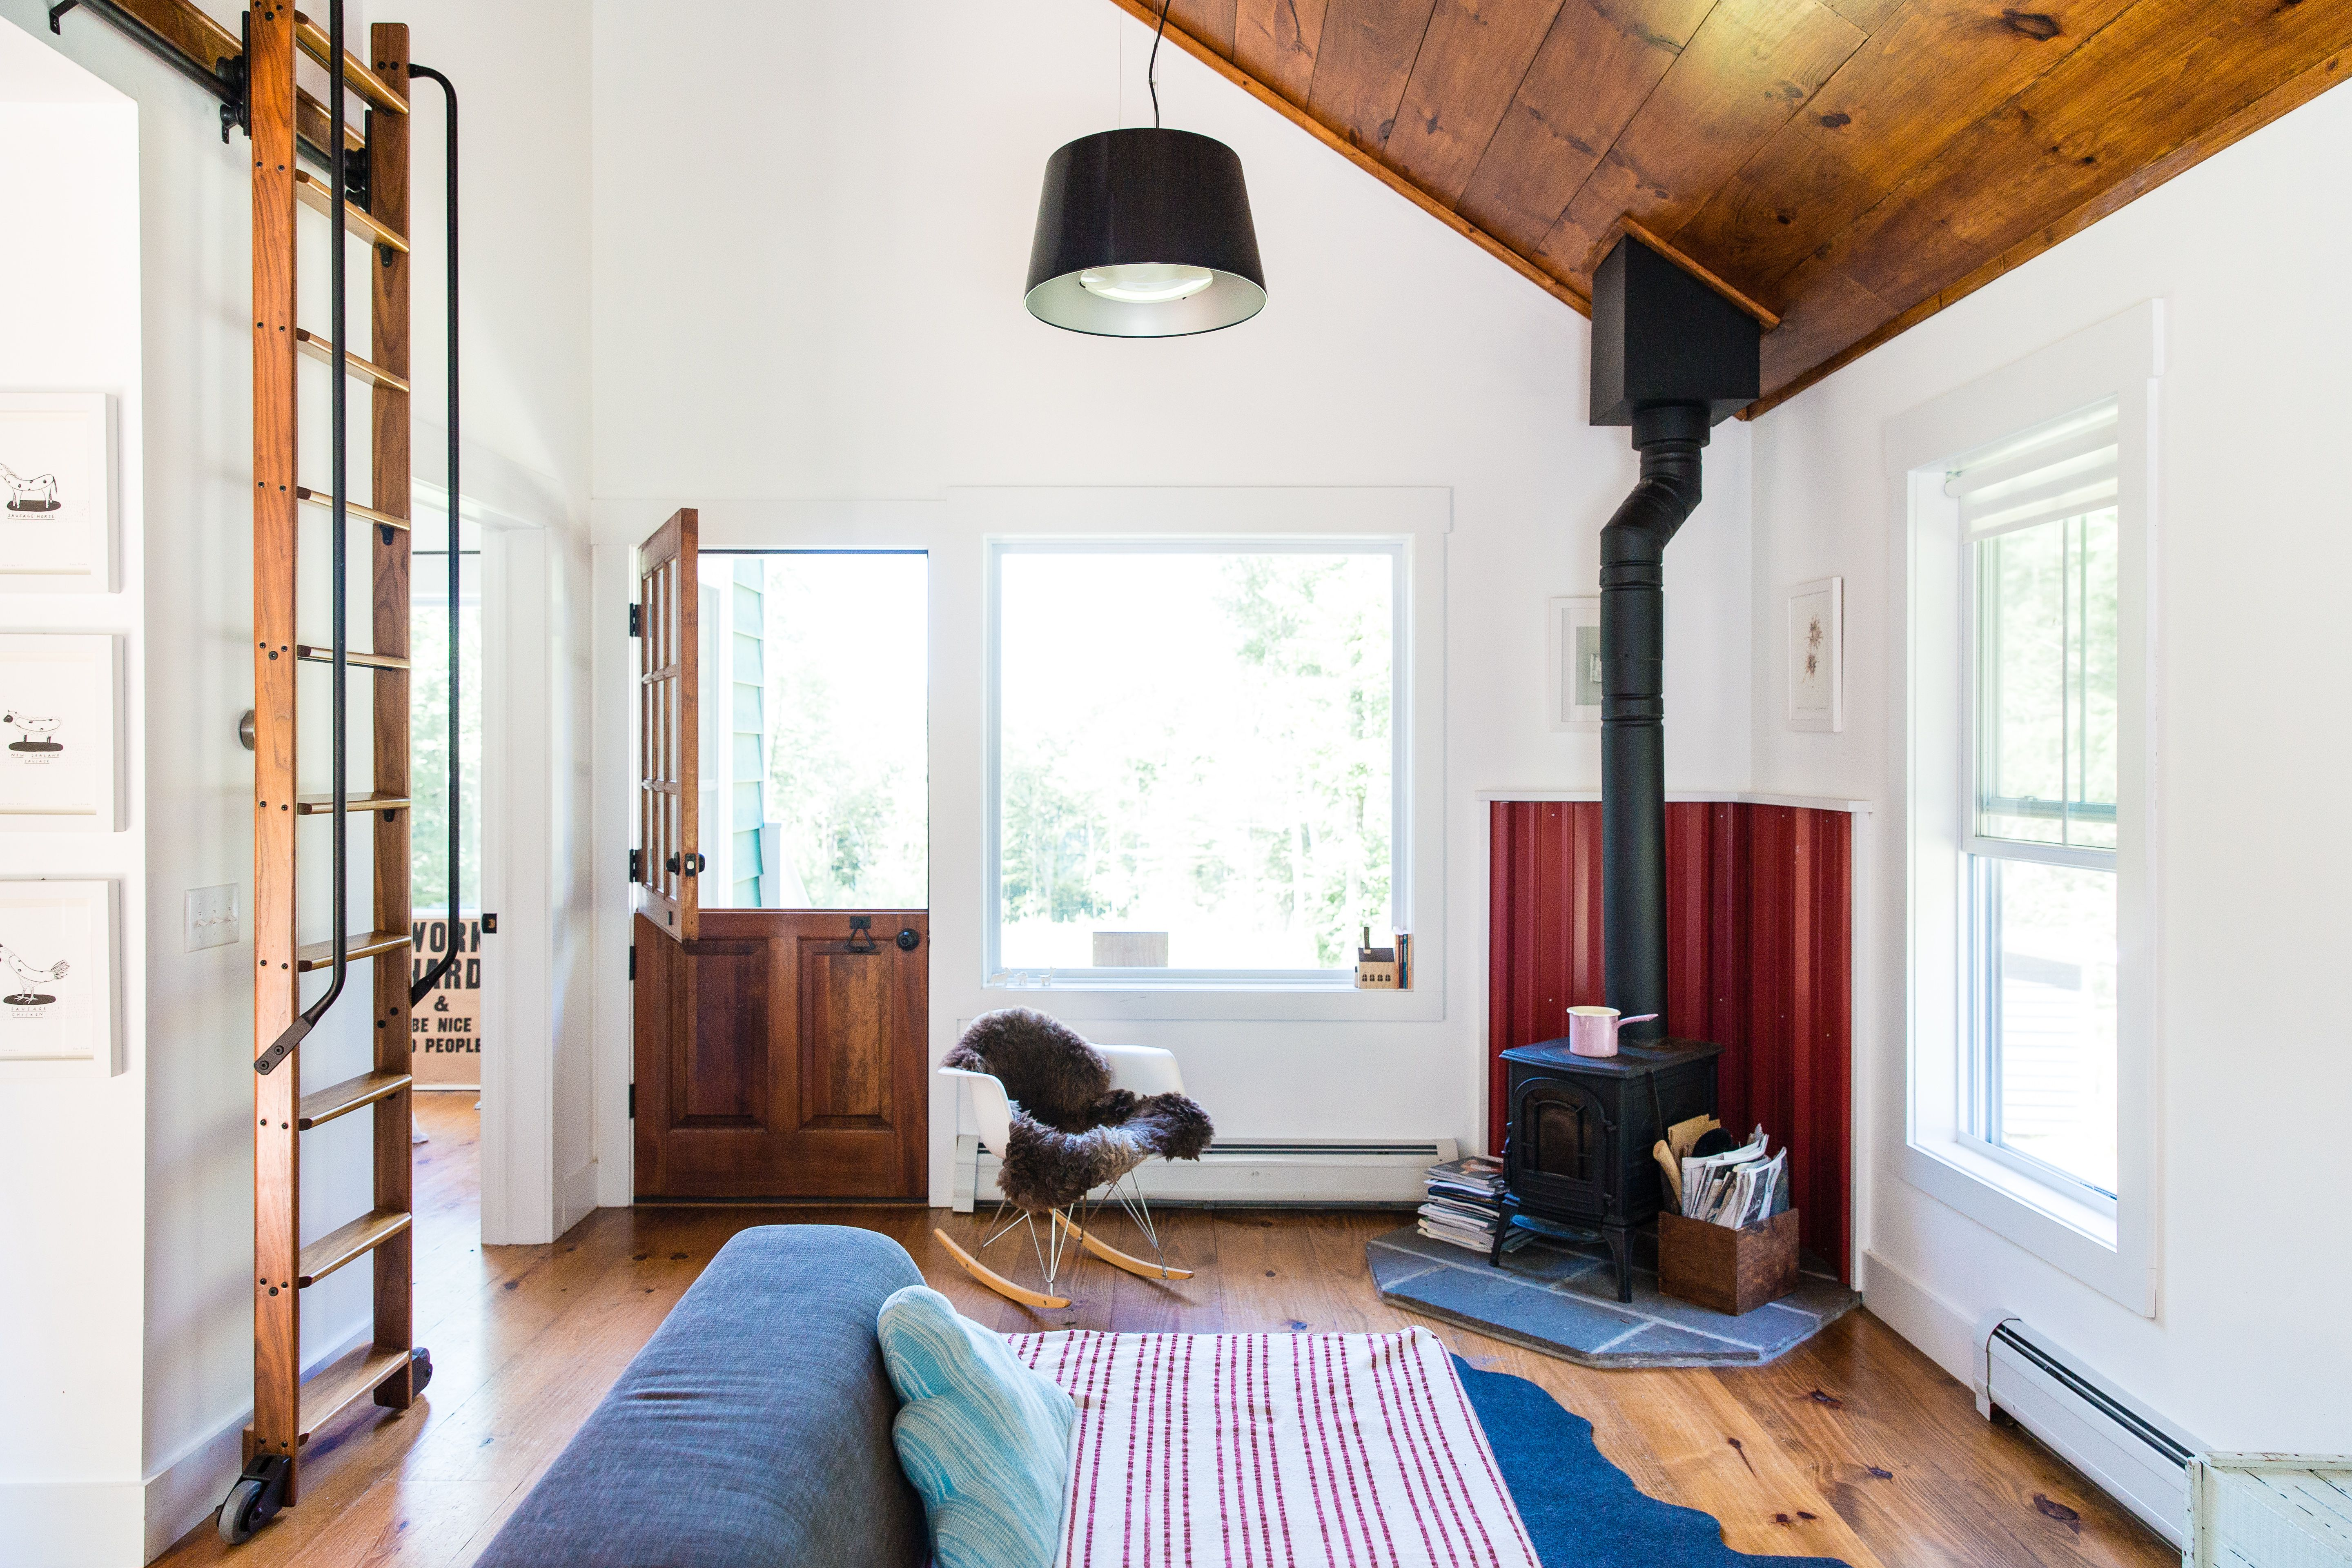 3 Homeowners On How To Make The Most Of Limited Space. Small Space Interior  DesignInterior ...